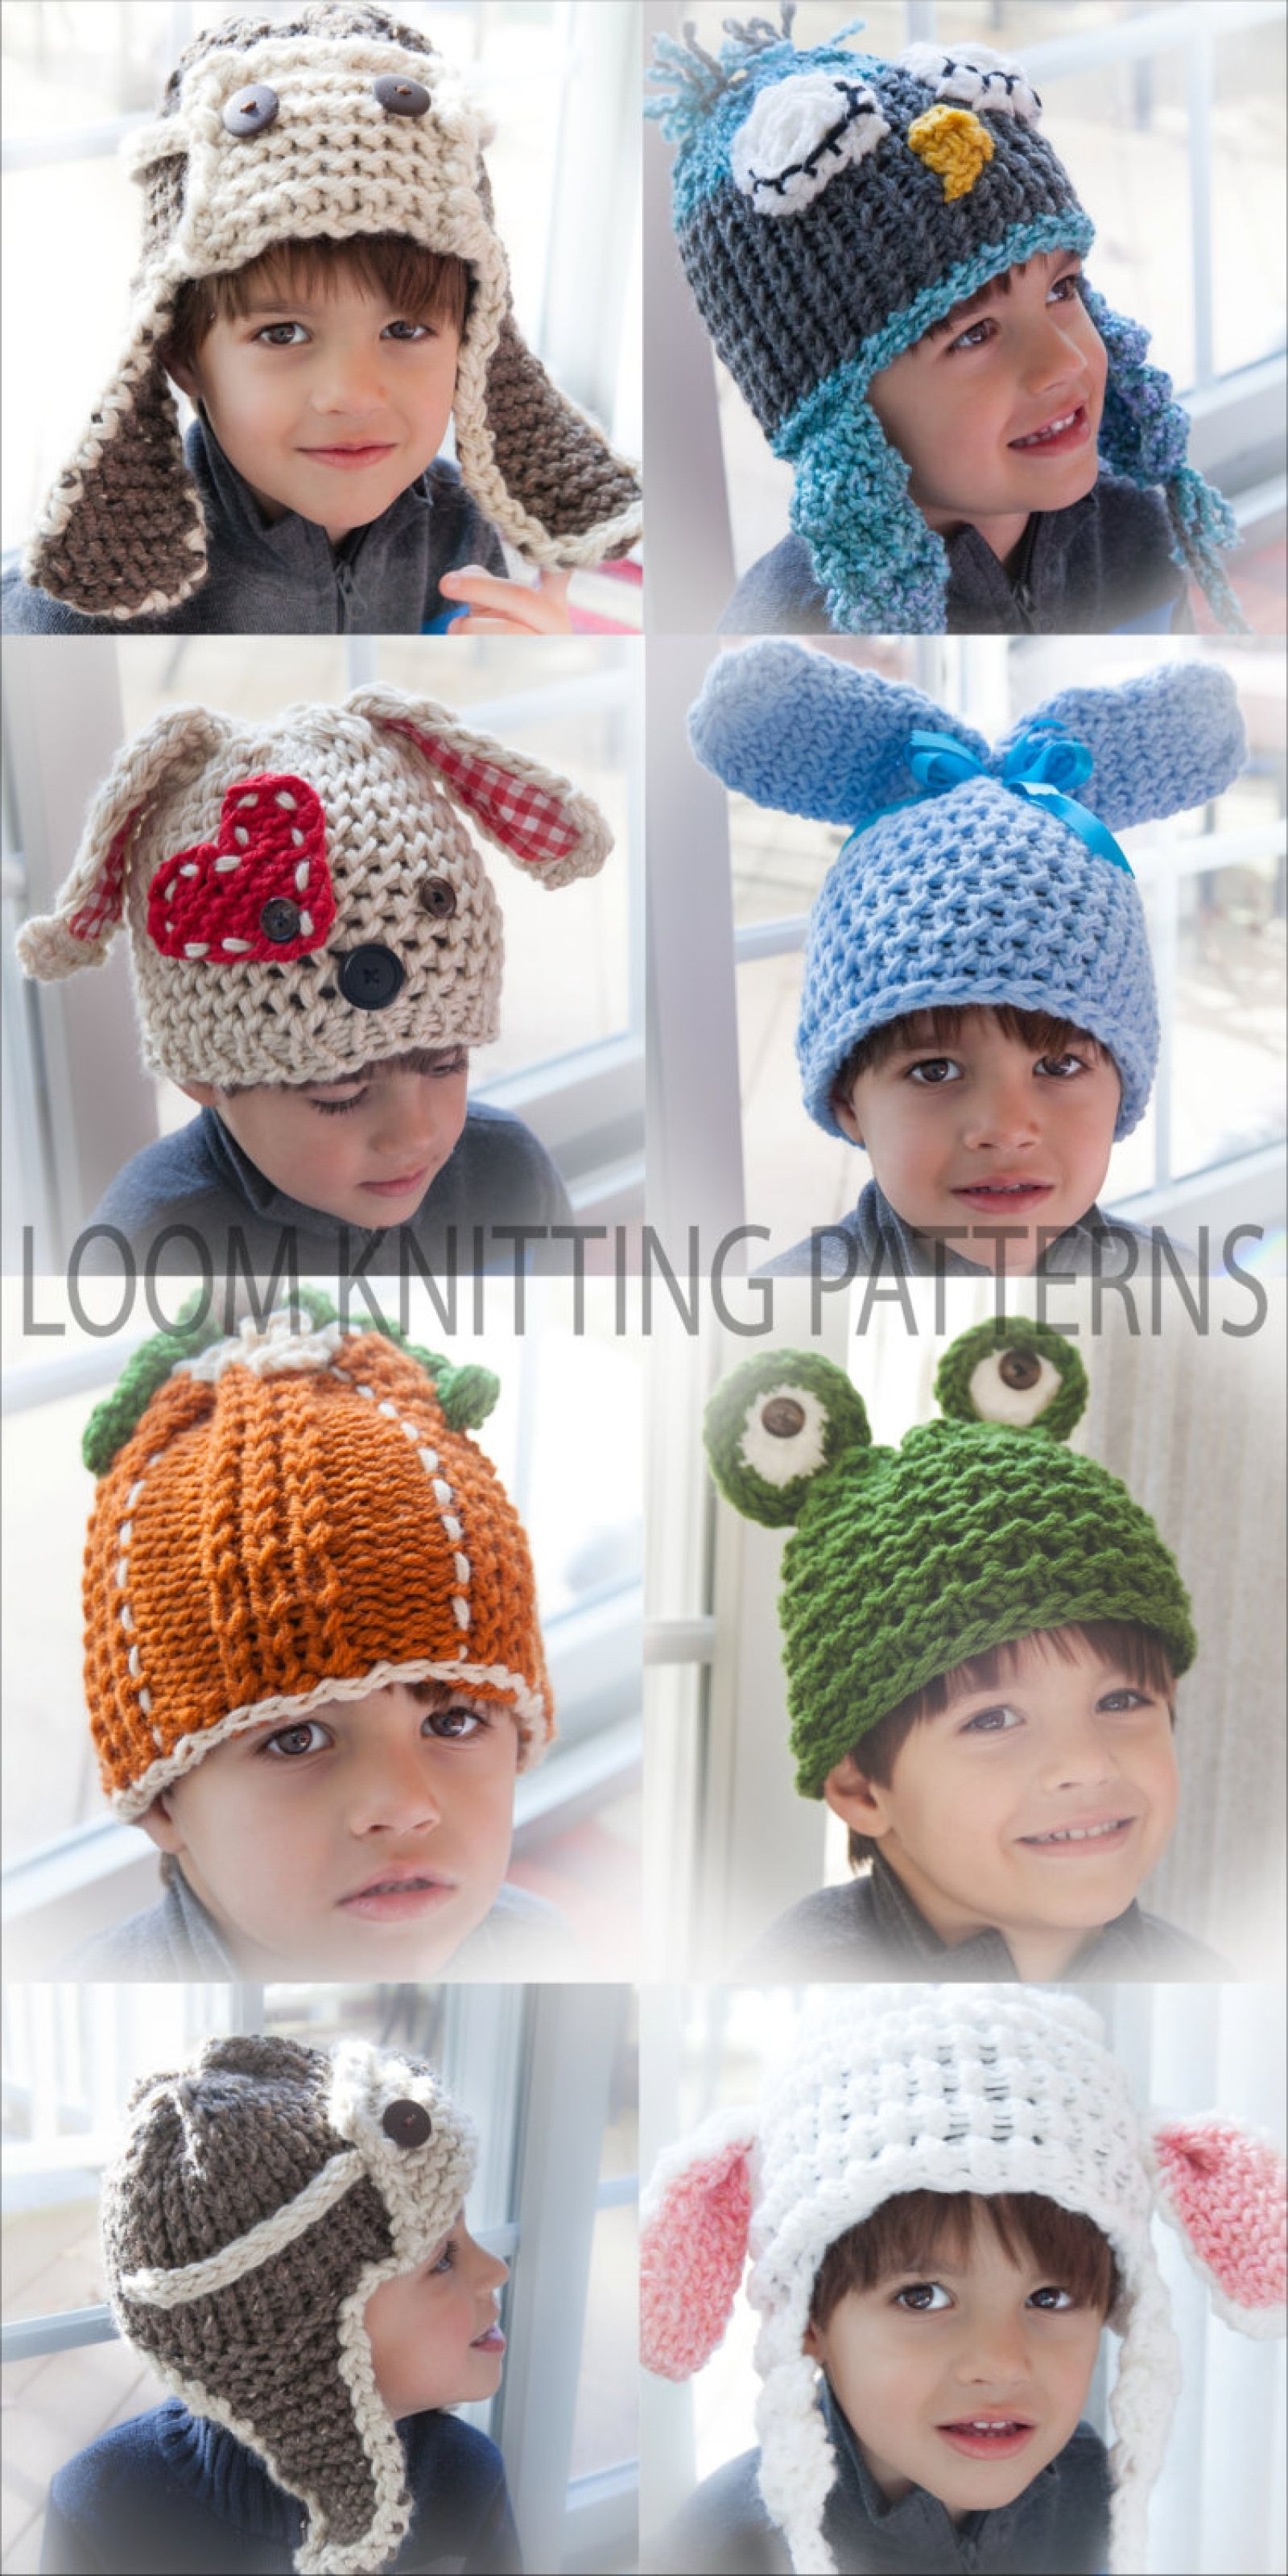 Loom knit character hat pattern collection 9 adorable patterns loom knit character hat pattern collection 9 adorable patterns included bunny lamb frog pumpkin puppy aviator owl chickpom pom hat dt1010fo